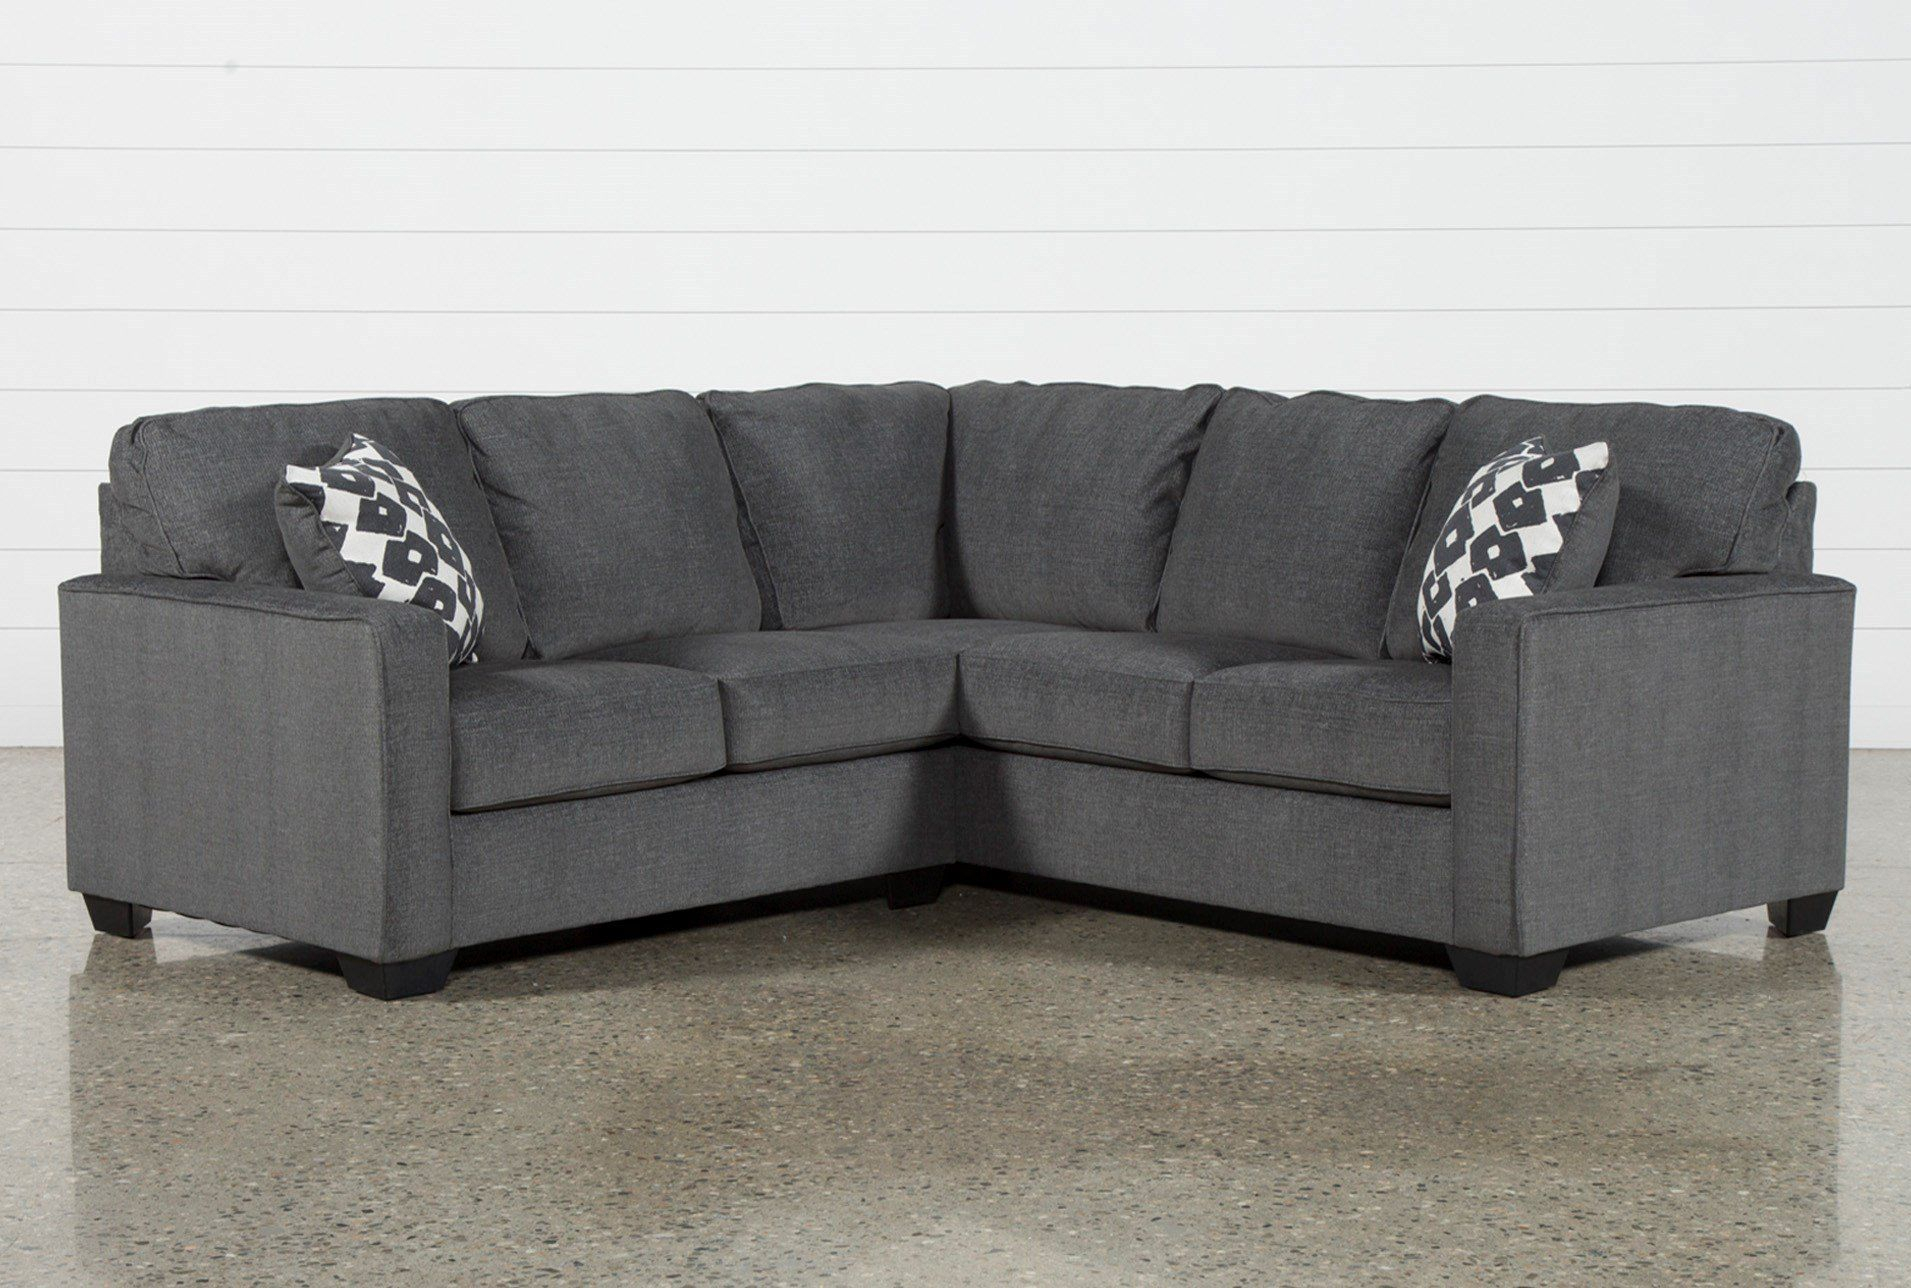 """Turdur 2 Piece 92"""" Sectional With Left Arm Facing Loveseat Inside Turdur 2 Piece Sectionals With Laf Loveseat (View 11 of 15)"""